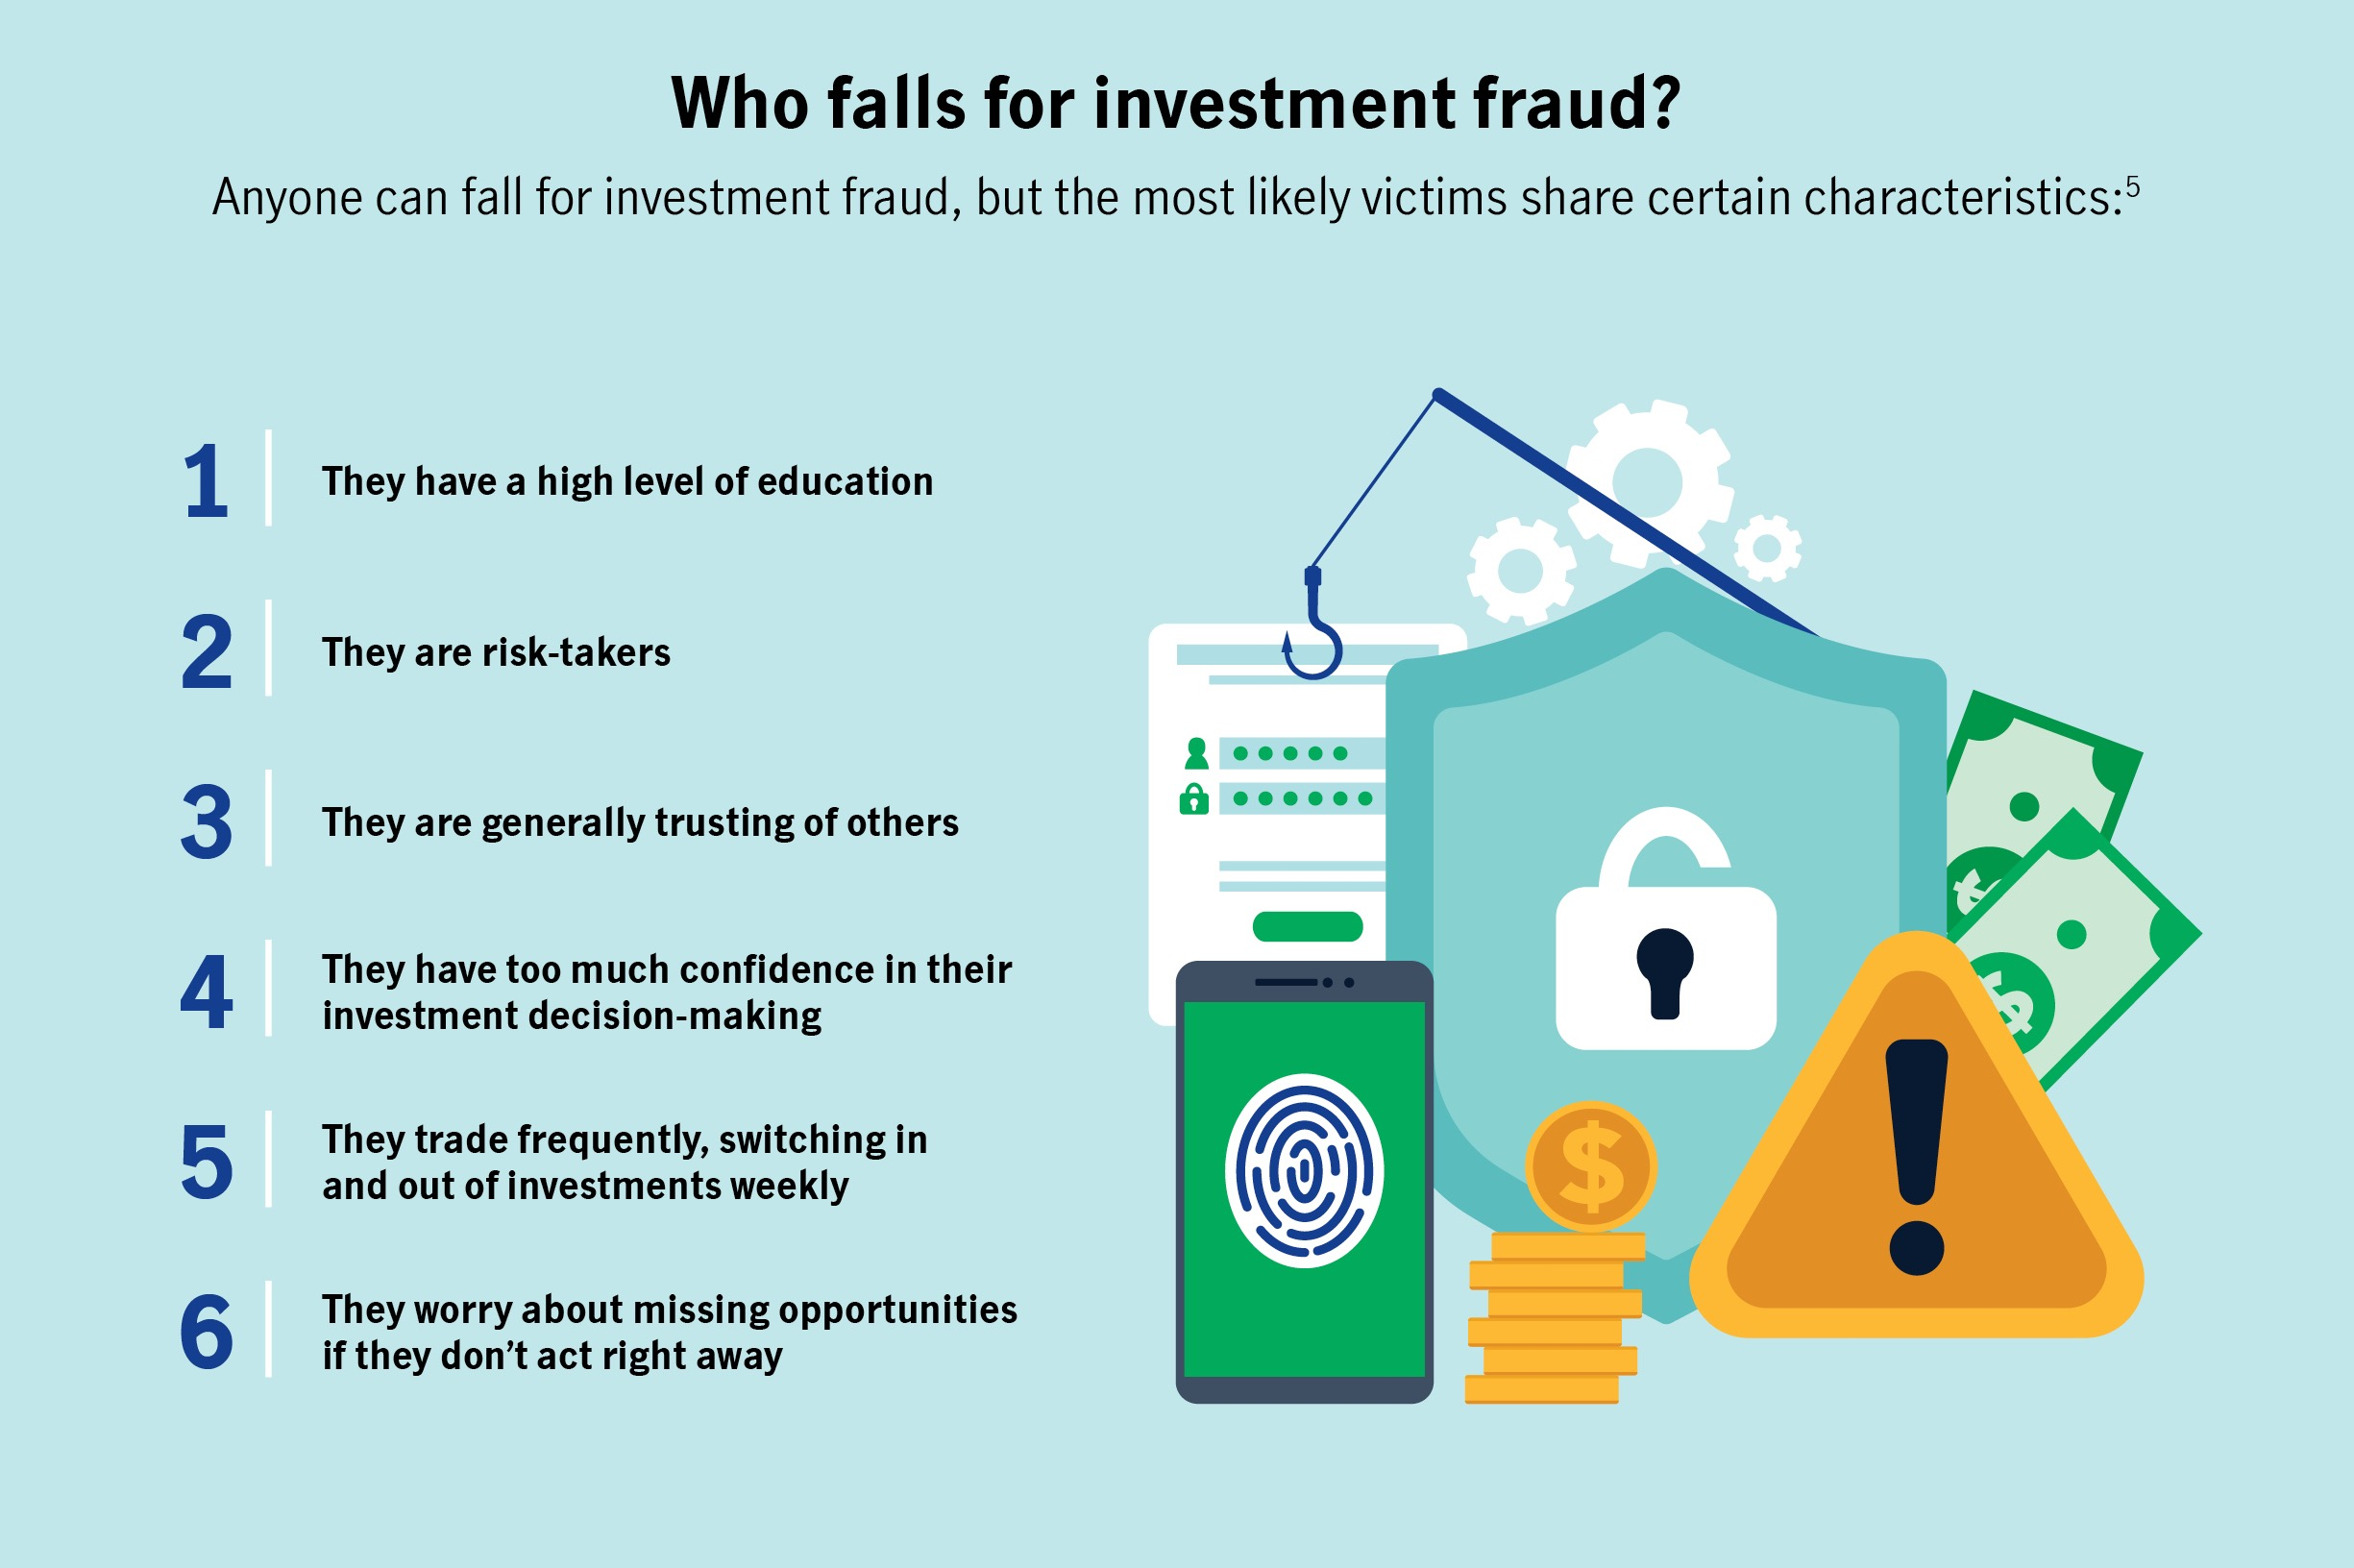 Who falls for investment fraud? Anyone can fall for investment fraud, but the most likely victims share certain characteristics.